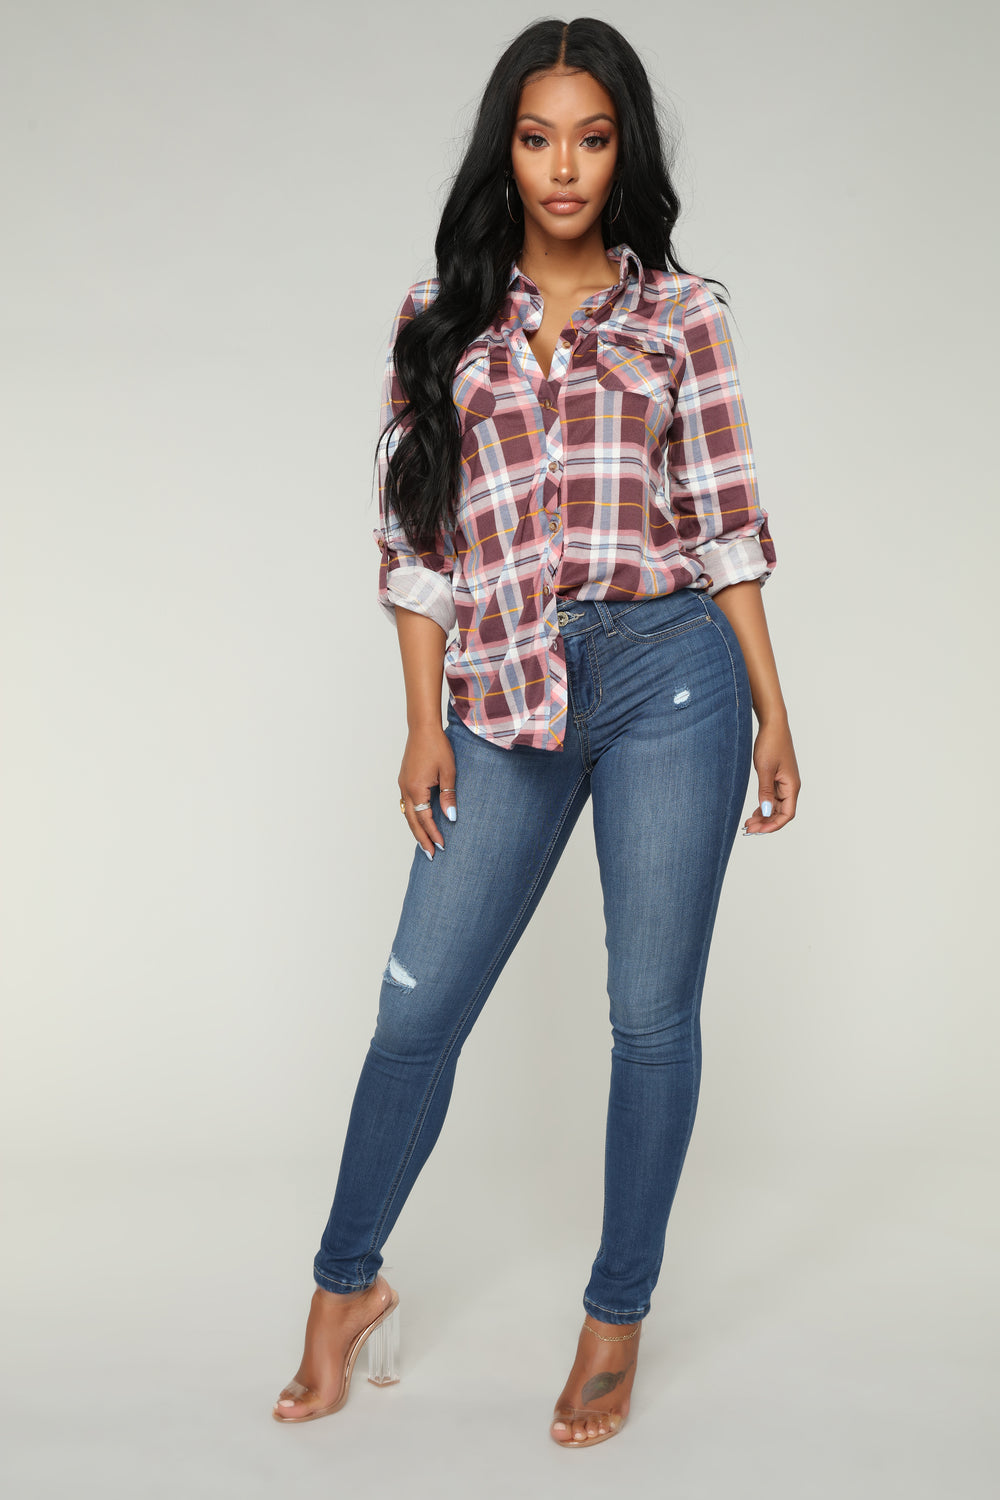 Lounge Lover Long Sleeve Plaid Top - Plum/Combo